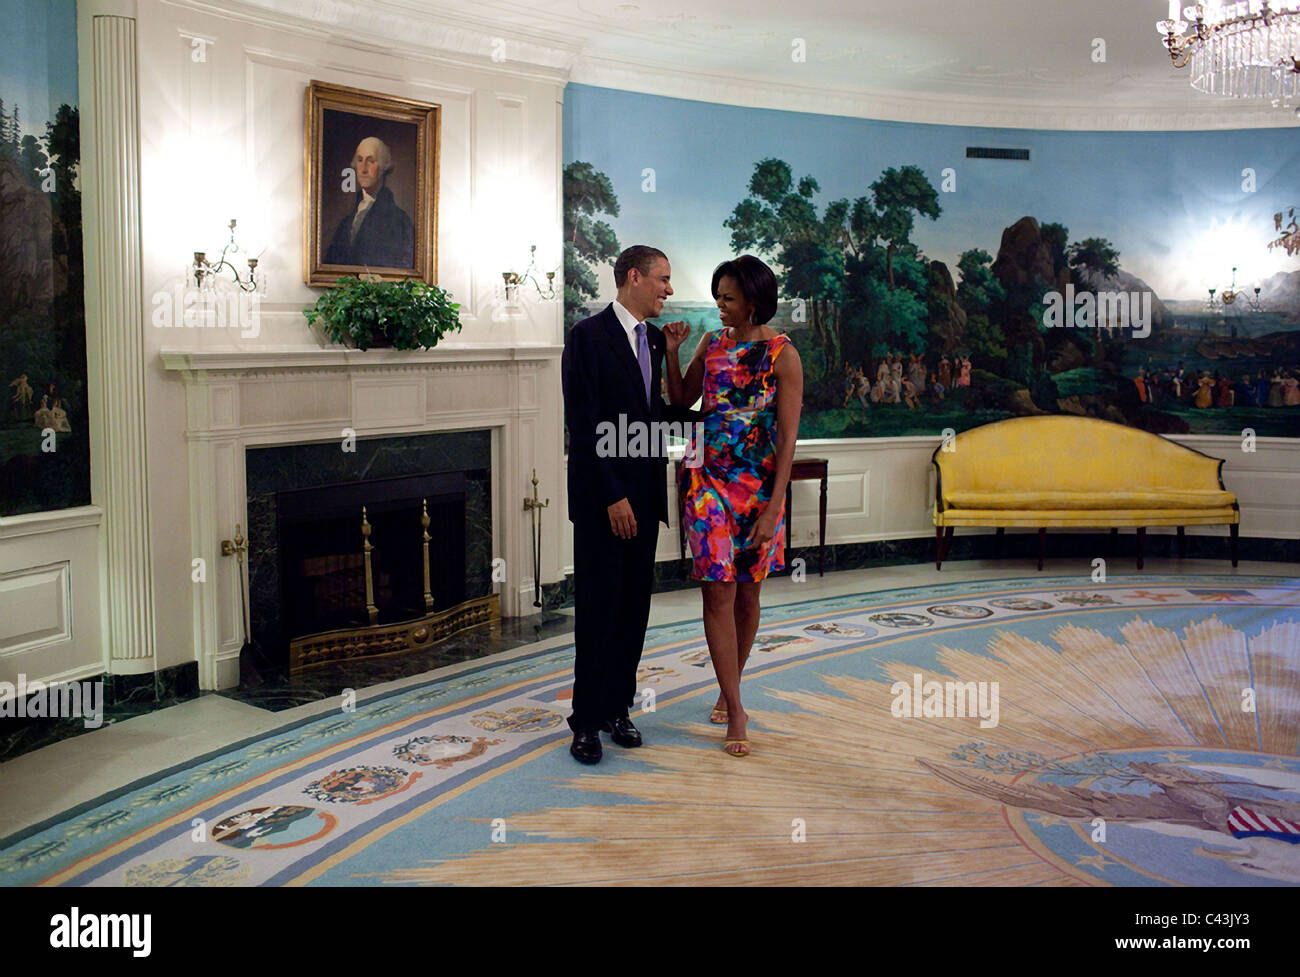 President Barack Obama with First Lady Michelle Obama - Stock Image